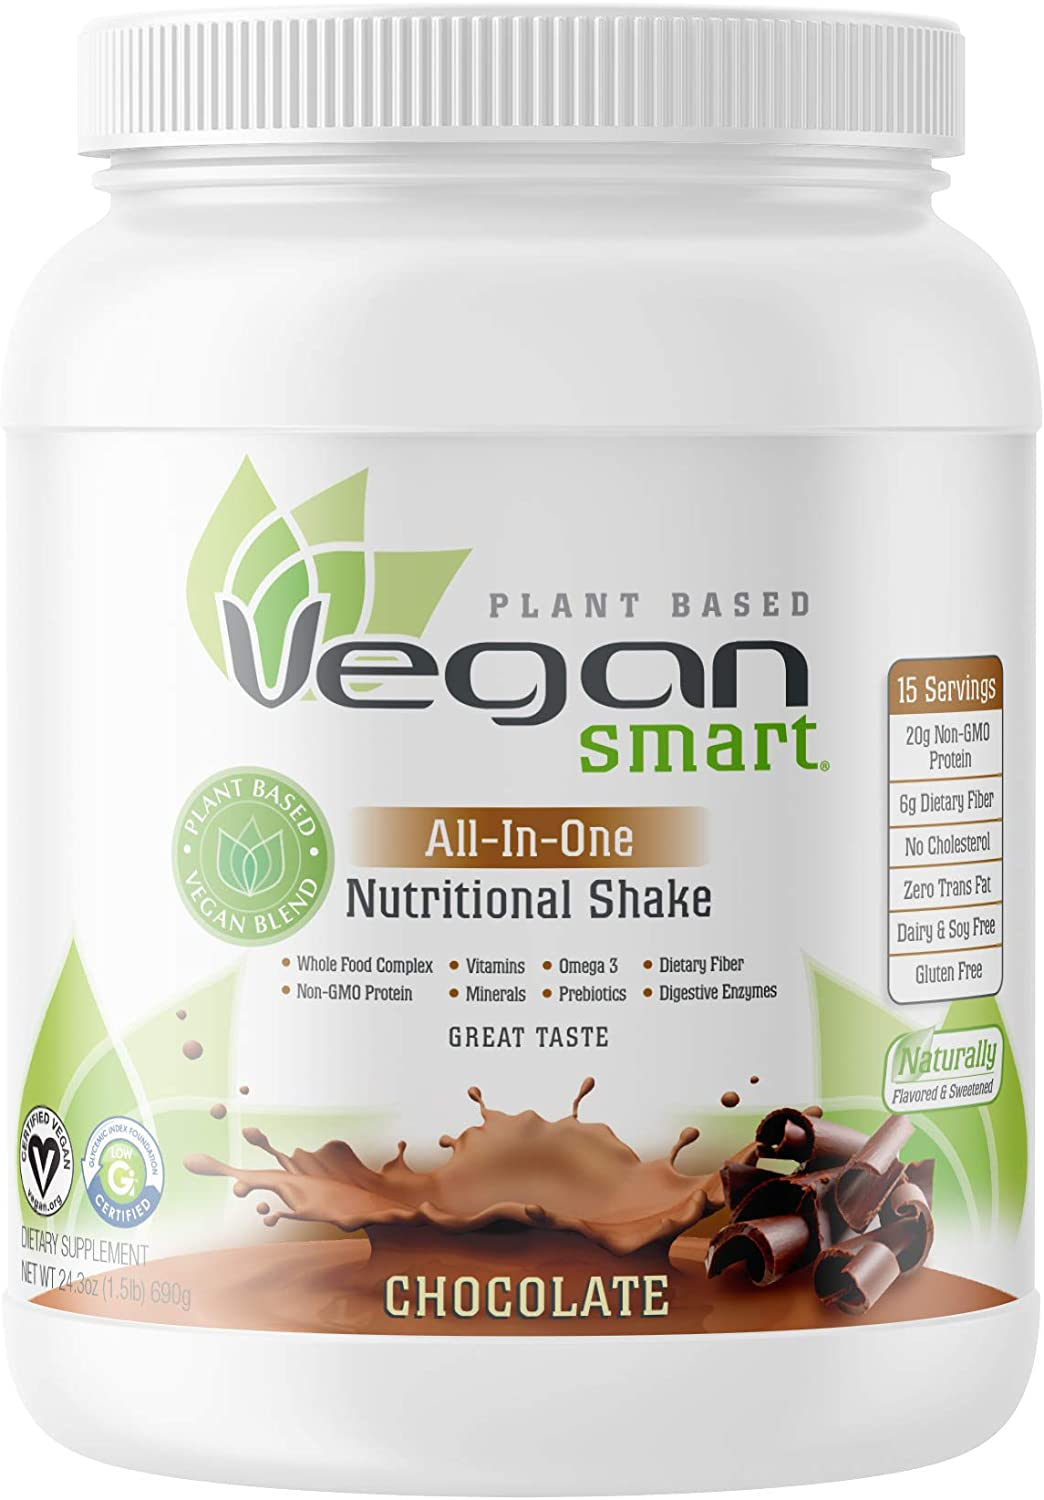 Vegansmart Plant Based Vegan Protein Powder by Naturade, All-In-One Nutritional Shake - Chocolate (15 Servings): Health & Personal Care